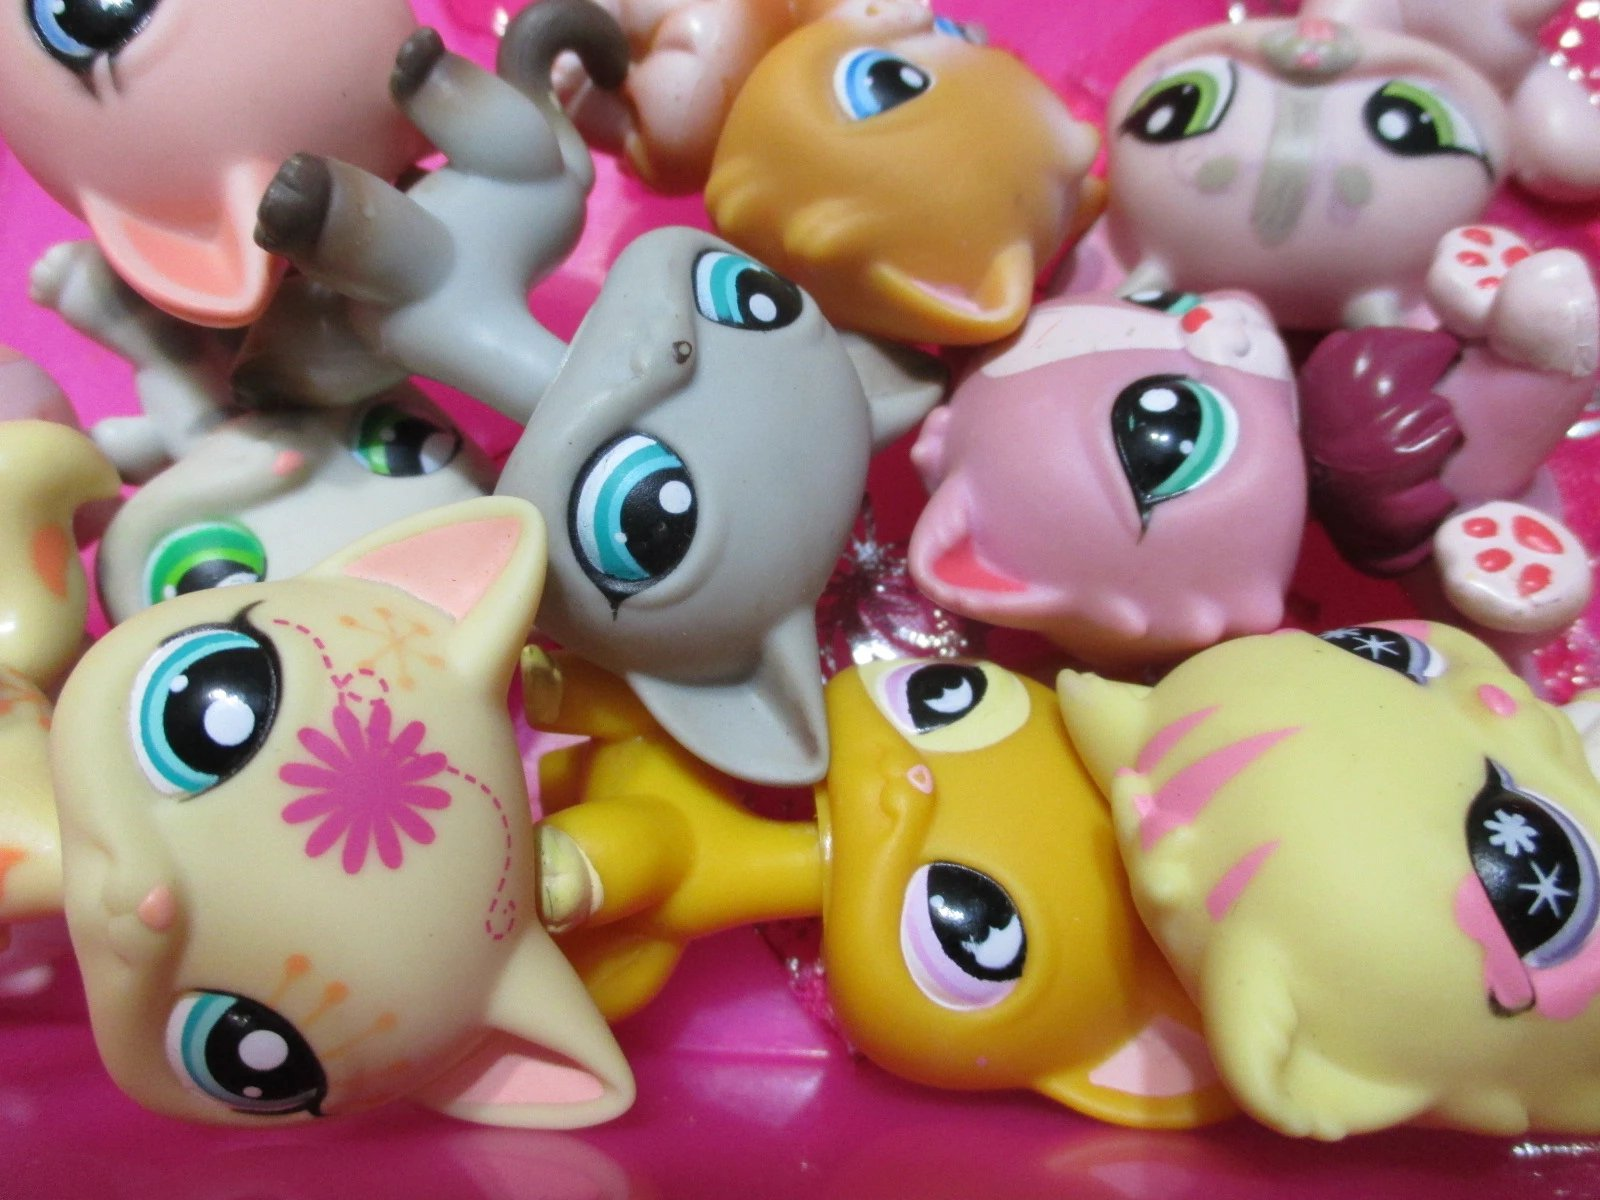 Littlest Pet Shop Lot 5 Random Generation 4 Totally Talented with 1 Dog or Cat